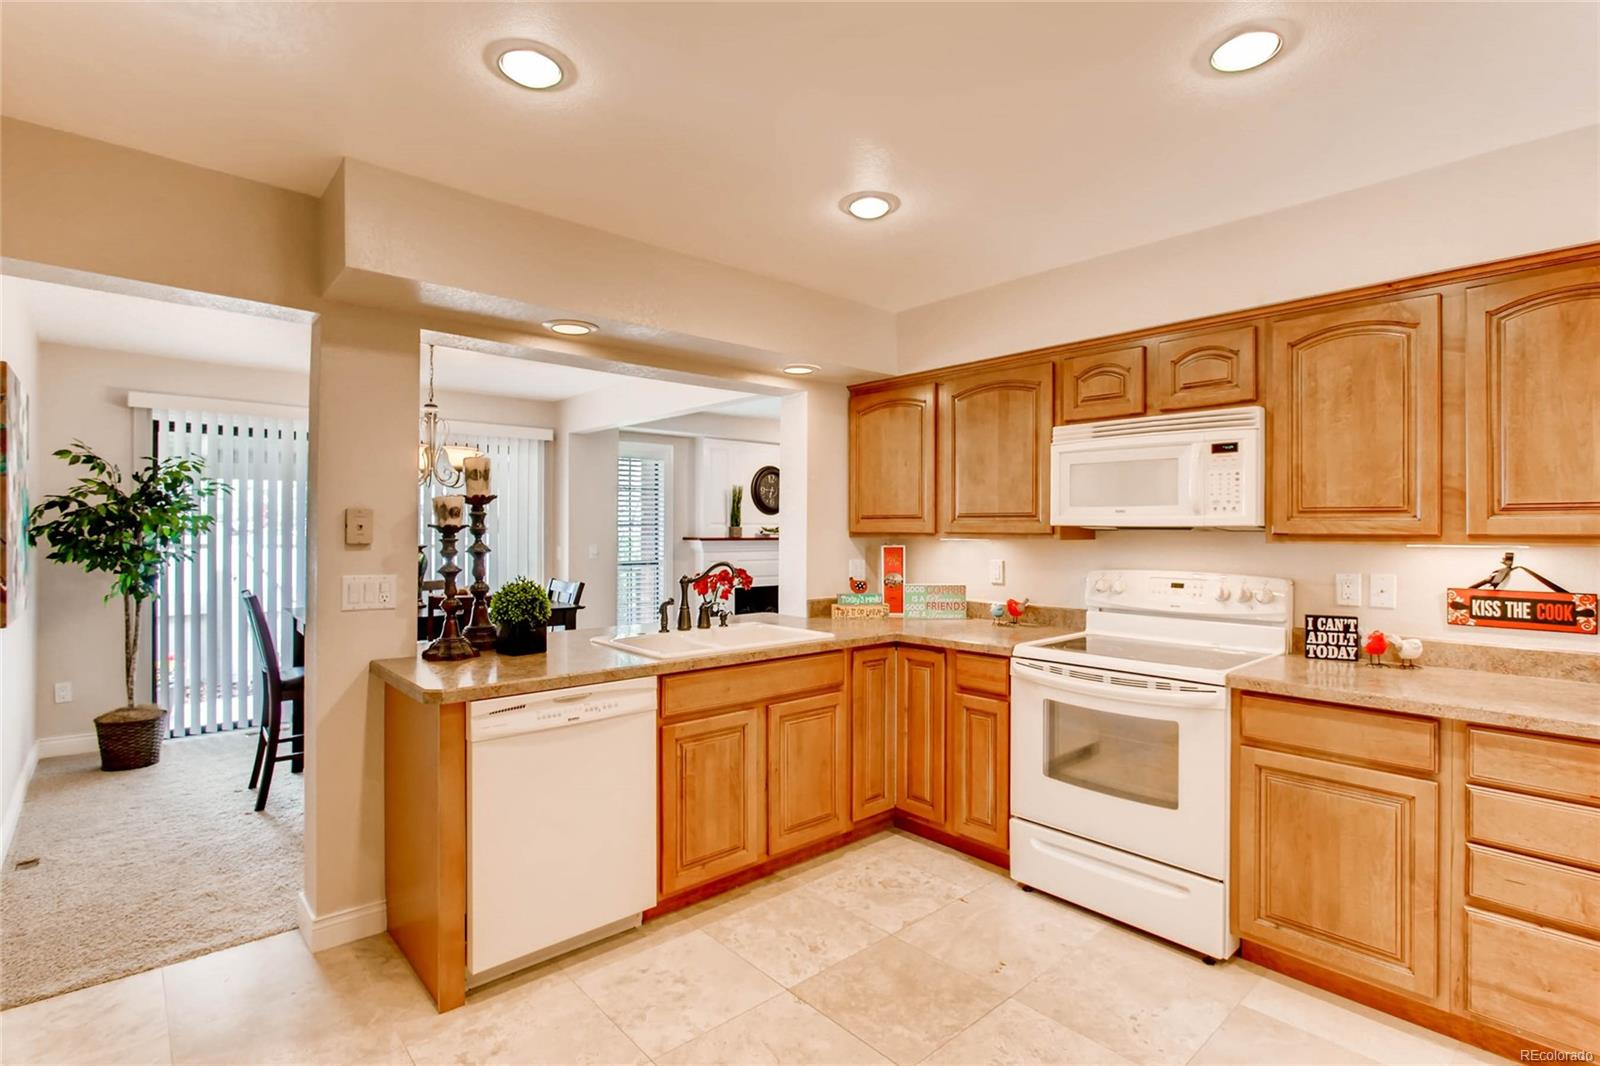 BEAUTIFUL FULLY REMODELED KITCHEN WITH UNDER-CABINET LIGHTING